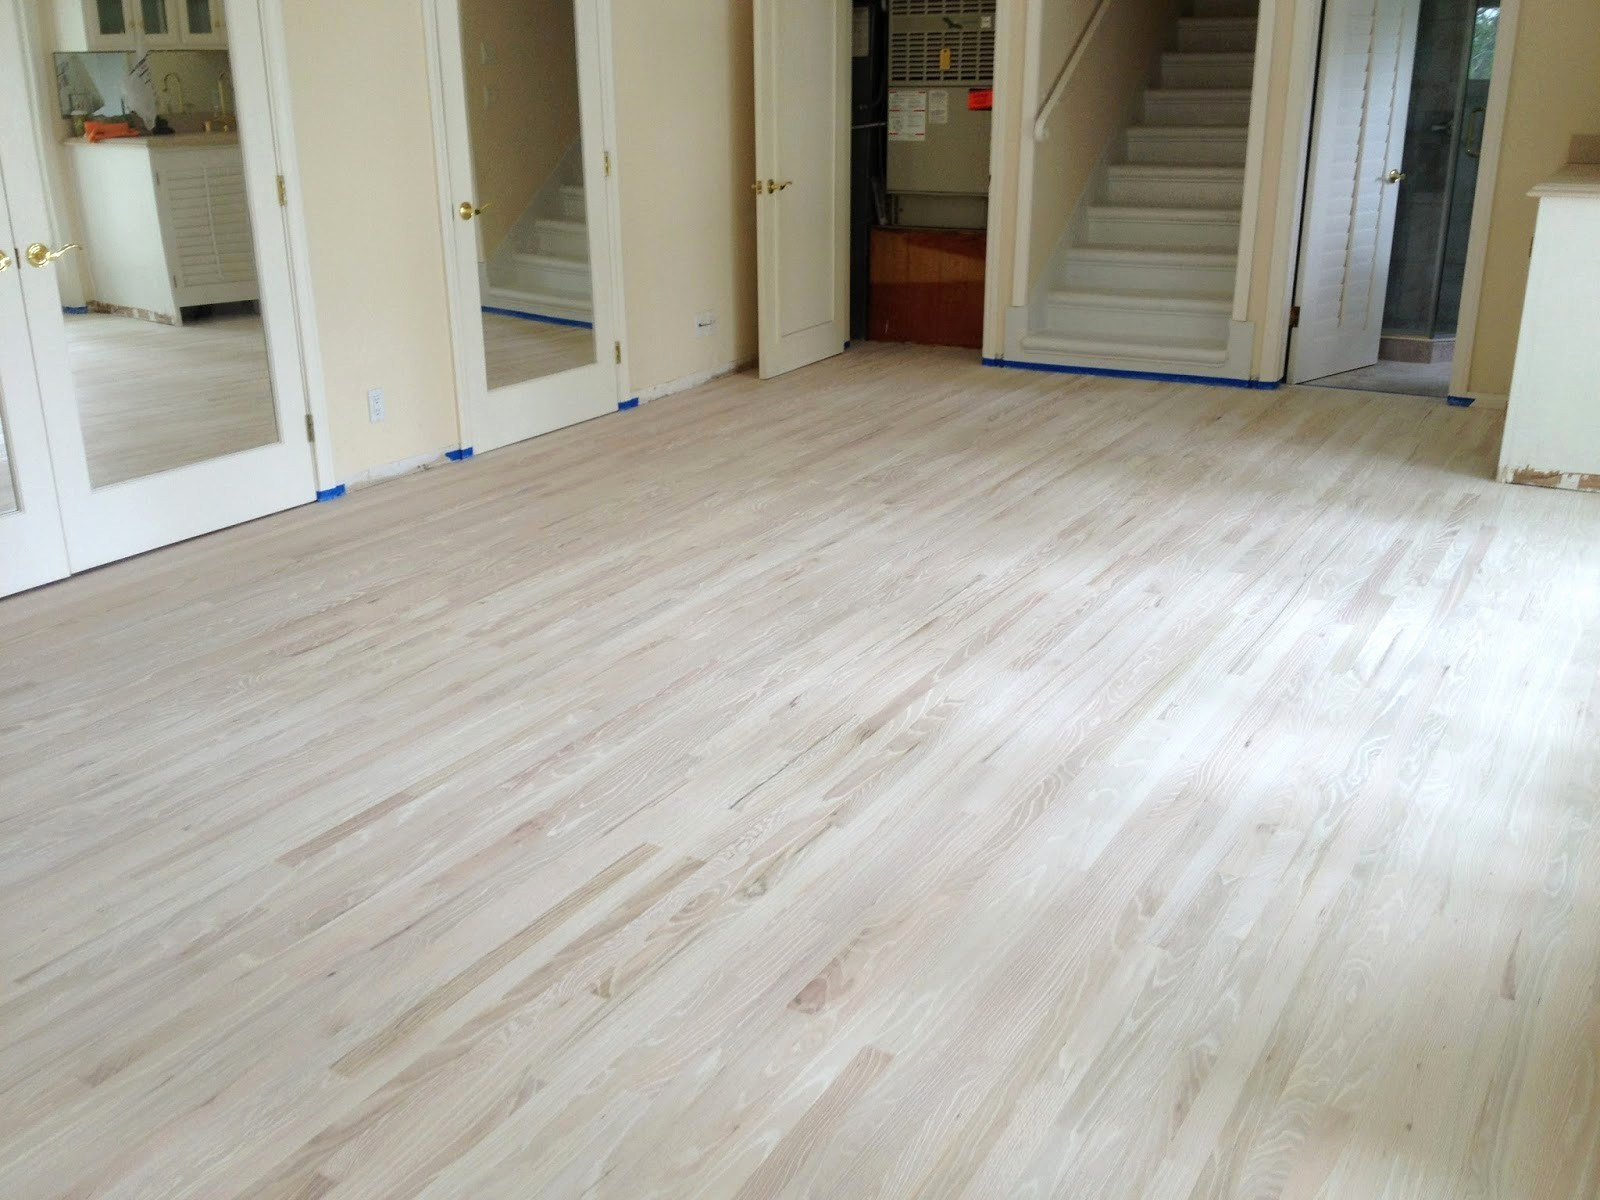 Refinish and Stain Hardwood Floors